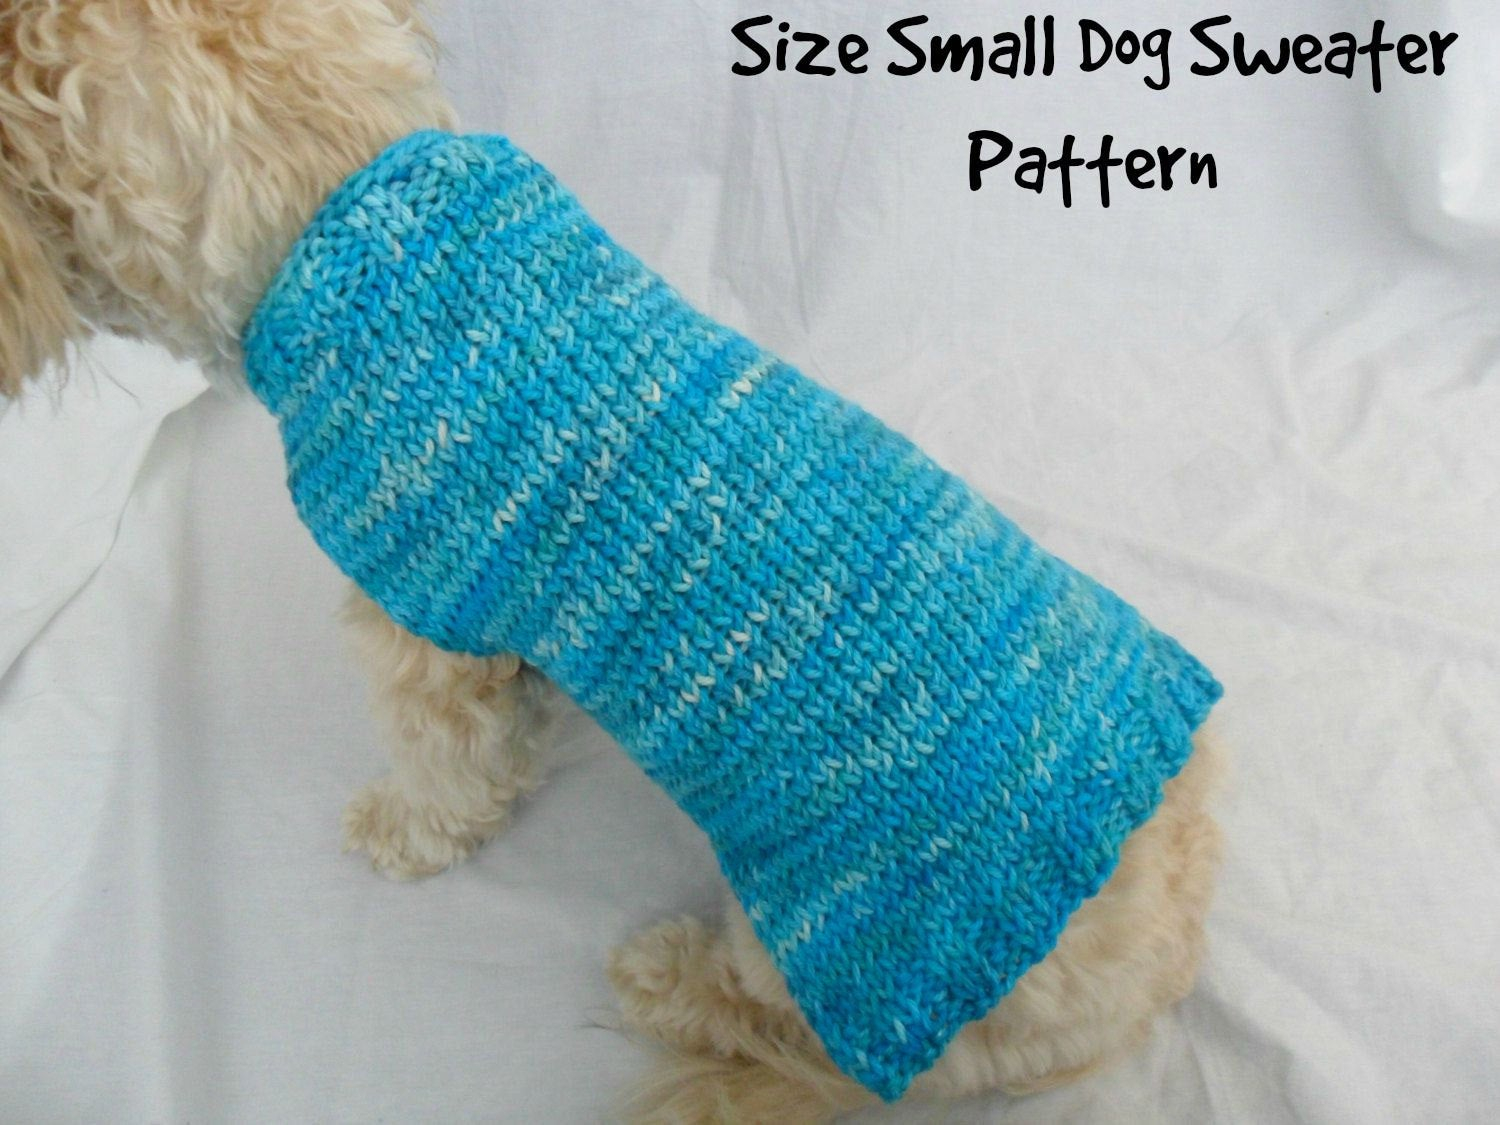 Small Dog Knitting Patterns Simple Dog Sweater Knitting Pattern Pdf Small Dog Sweater